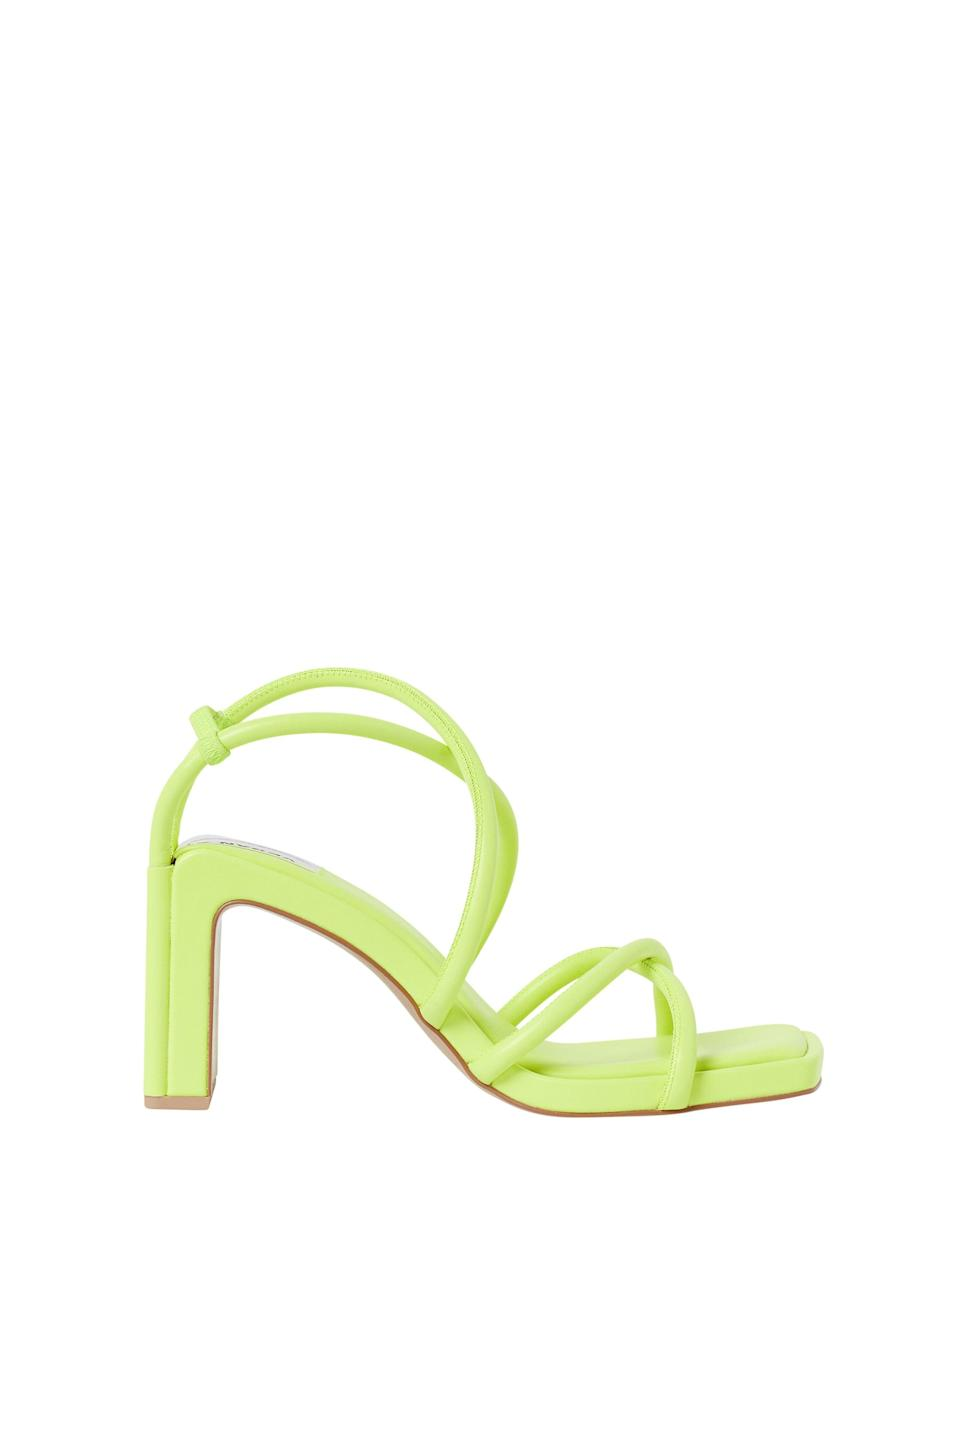 <p><span>H&amp;M Innovation Science Story Sandals in Neon Green</span> ($129)</p>